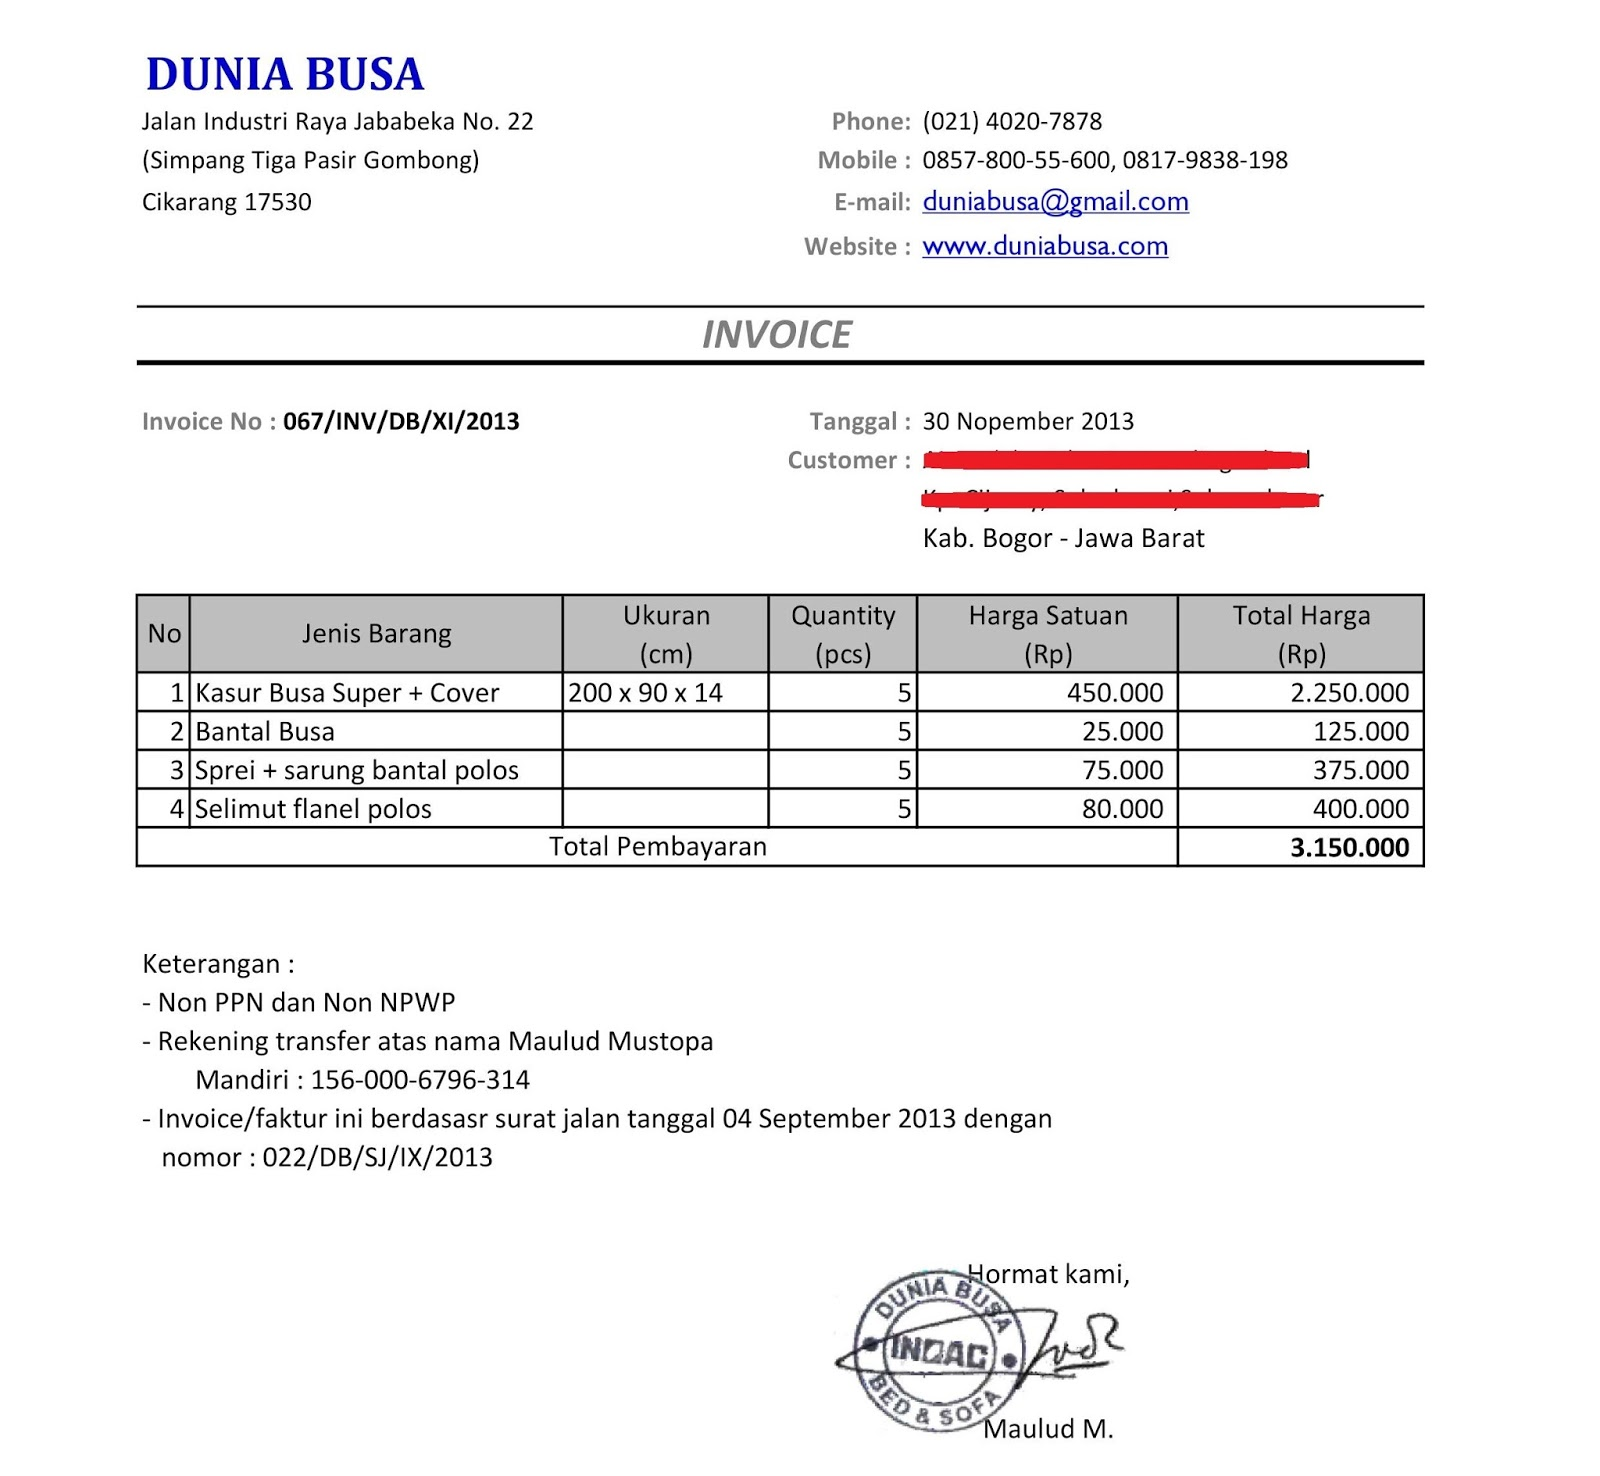 Usdgus  Outstanding Free Invoice Online  Create Invoice Online  Invoice Template  With Goodlooking Contoh Format Invoice Atau Surat Tagihan  Brankas Arsip  Free Invoice Online With Charming Invoice Price For Car Also Invoice For Reimbursement In Addition Invoice Template Excel Free Download And Invoice Template Free Excel As Well As Legal Invoice Sample Additionally Simple Service Invoice From Sklepco With Usdgus  Goodlooking Free Invoice Online  Create Invoice Online  Invoice Template  With Charming Contoh Format Invoice Atau Surat Tagihan  Brankas Arsip  Free Invoice Online And Outstanding Invoice Price For Car Also Invoice For Reimbursement In Addition Invoice Template Excel Free Download From Sklepco